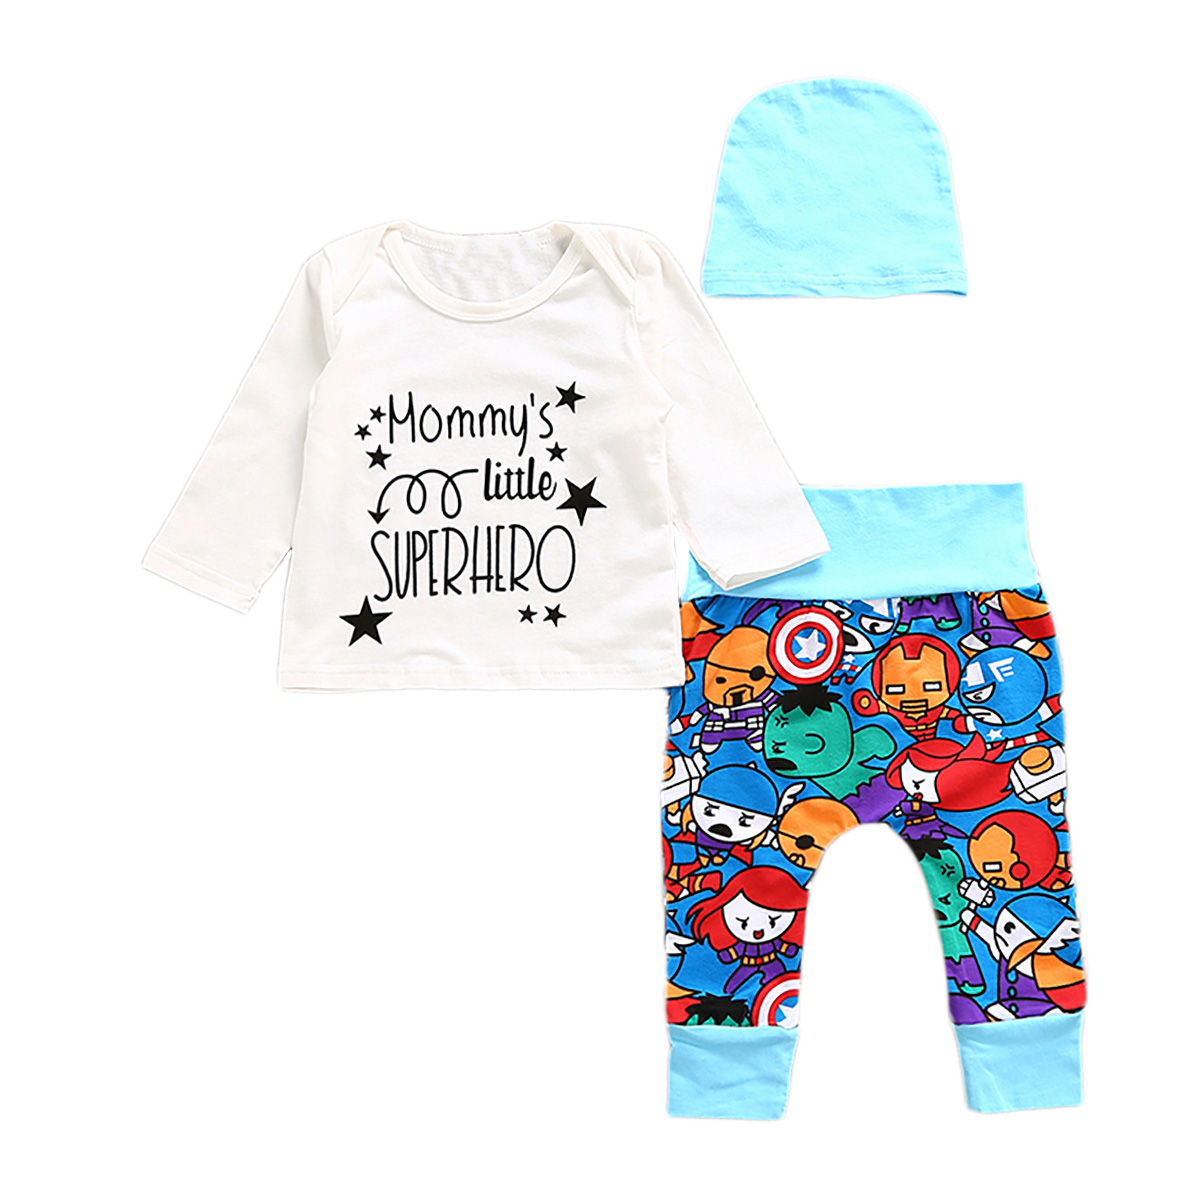 Cute Cotton Newborn Baby Boy Superhero Letter Printed Long Sleeve T-shirt Cartoon Pants Leggings Outfit Autumn Clothes Set 0-2Y 2pcs set baby clothes set boy